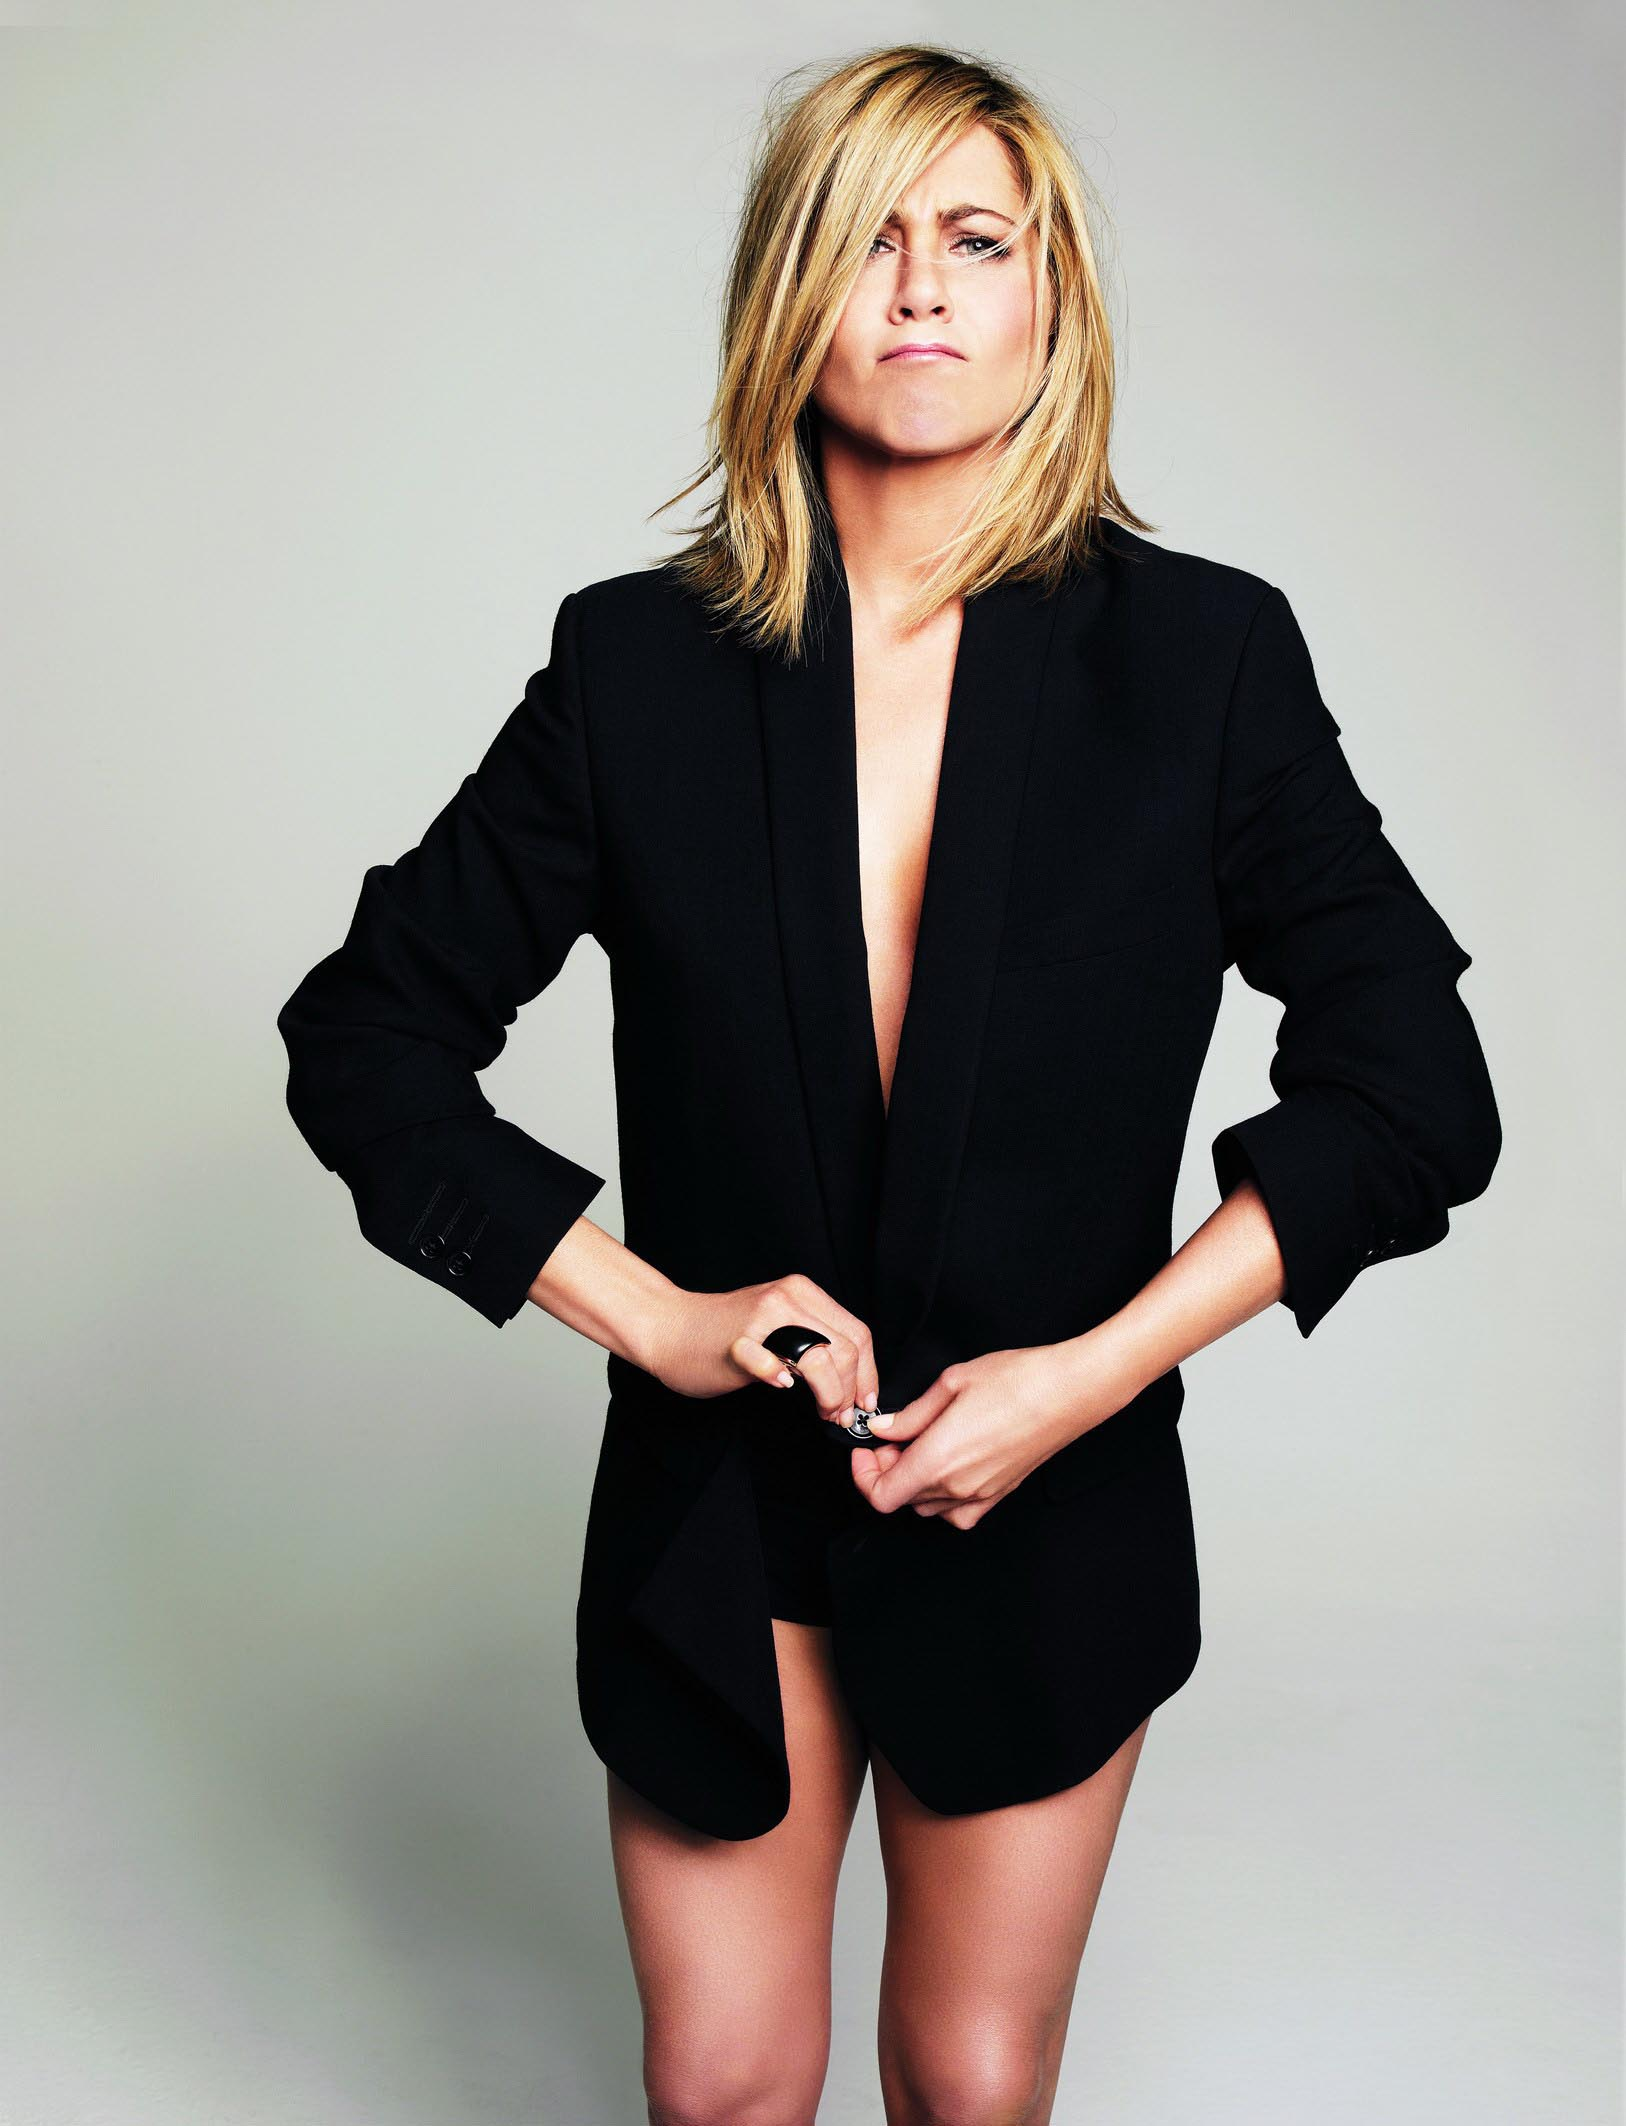 Tesh Photoshoot 2011 for Marie Claire